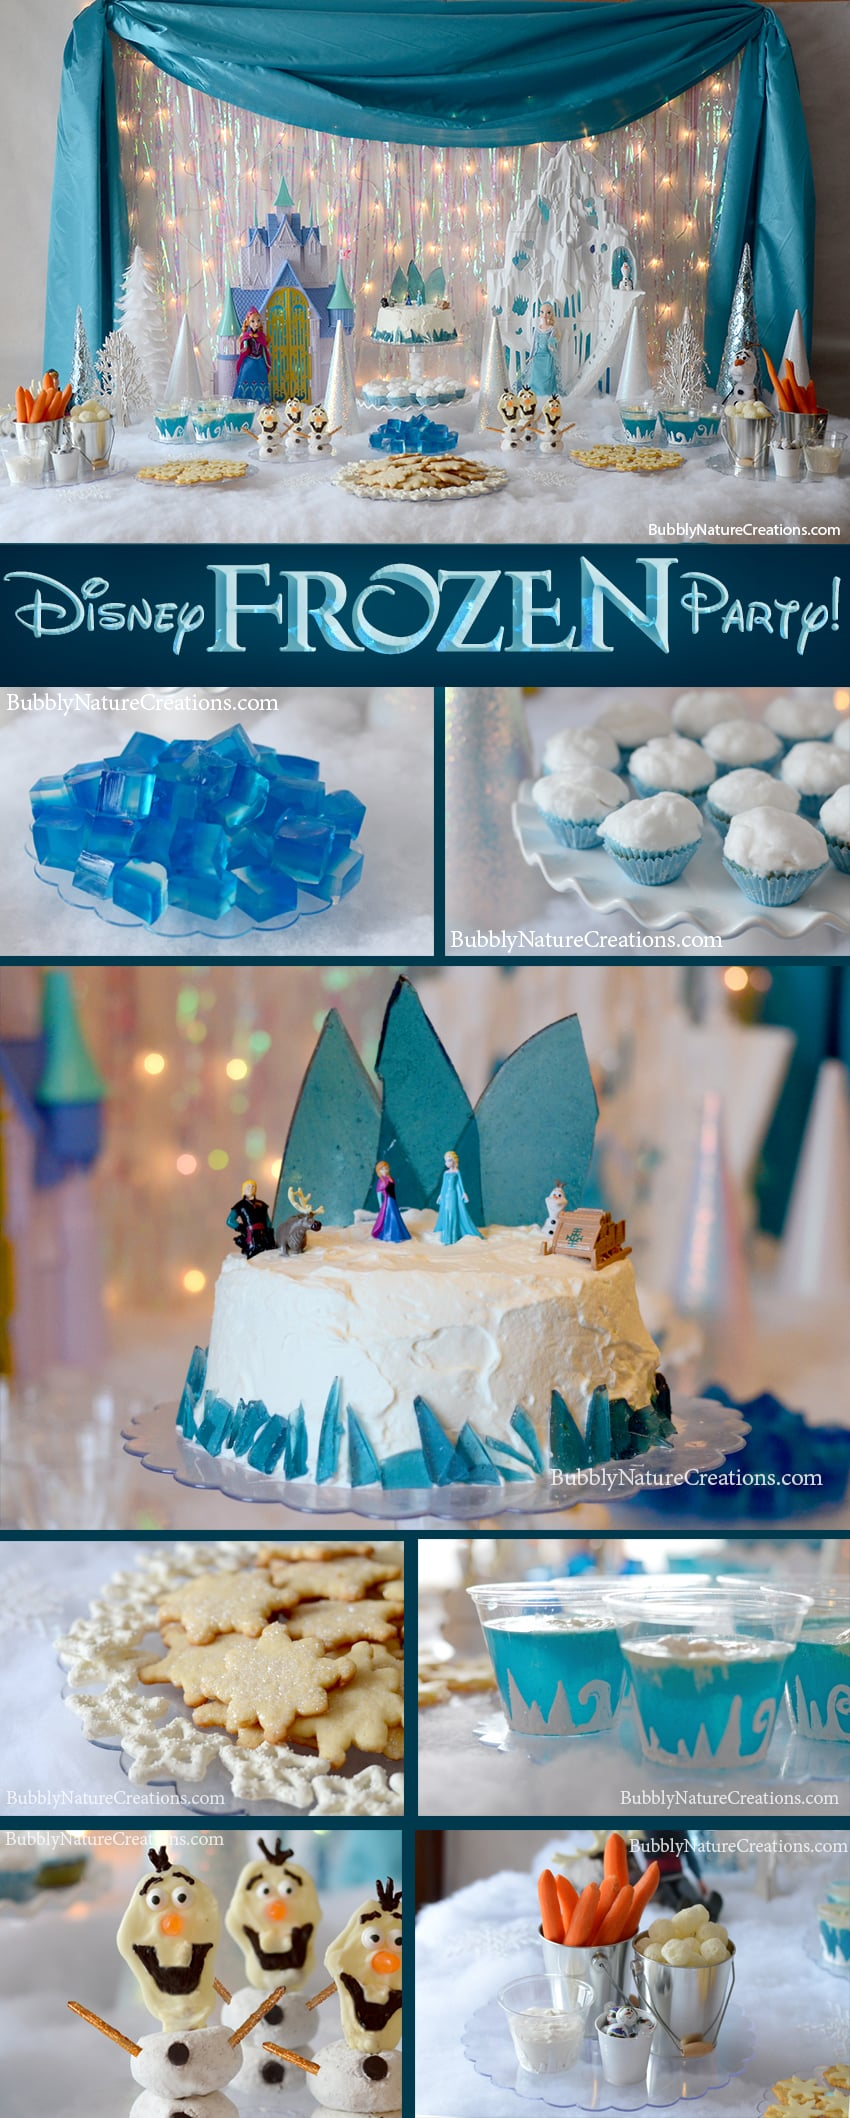 Frozen birthday party ideas paging supermom. Thank you so much for all the great ideas. I am working on a frozen birthday party for this month for my son and daughter. I love the table decoration idea of.